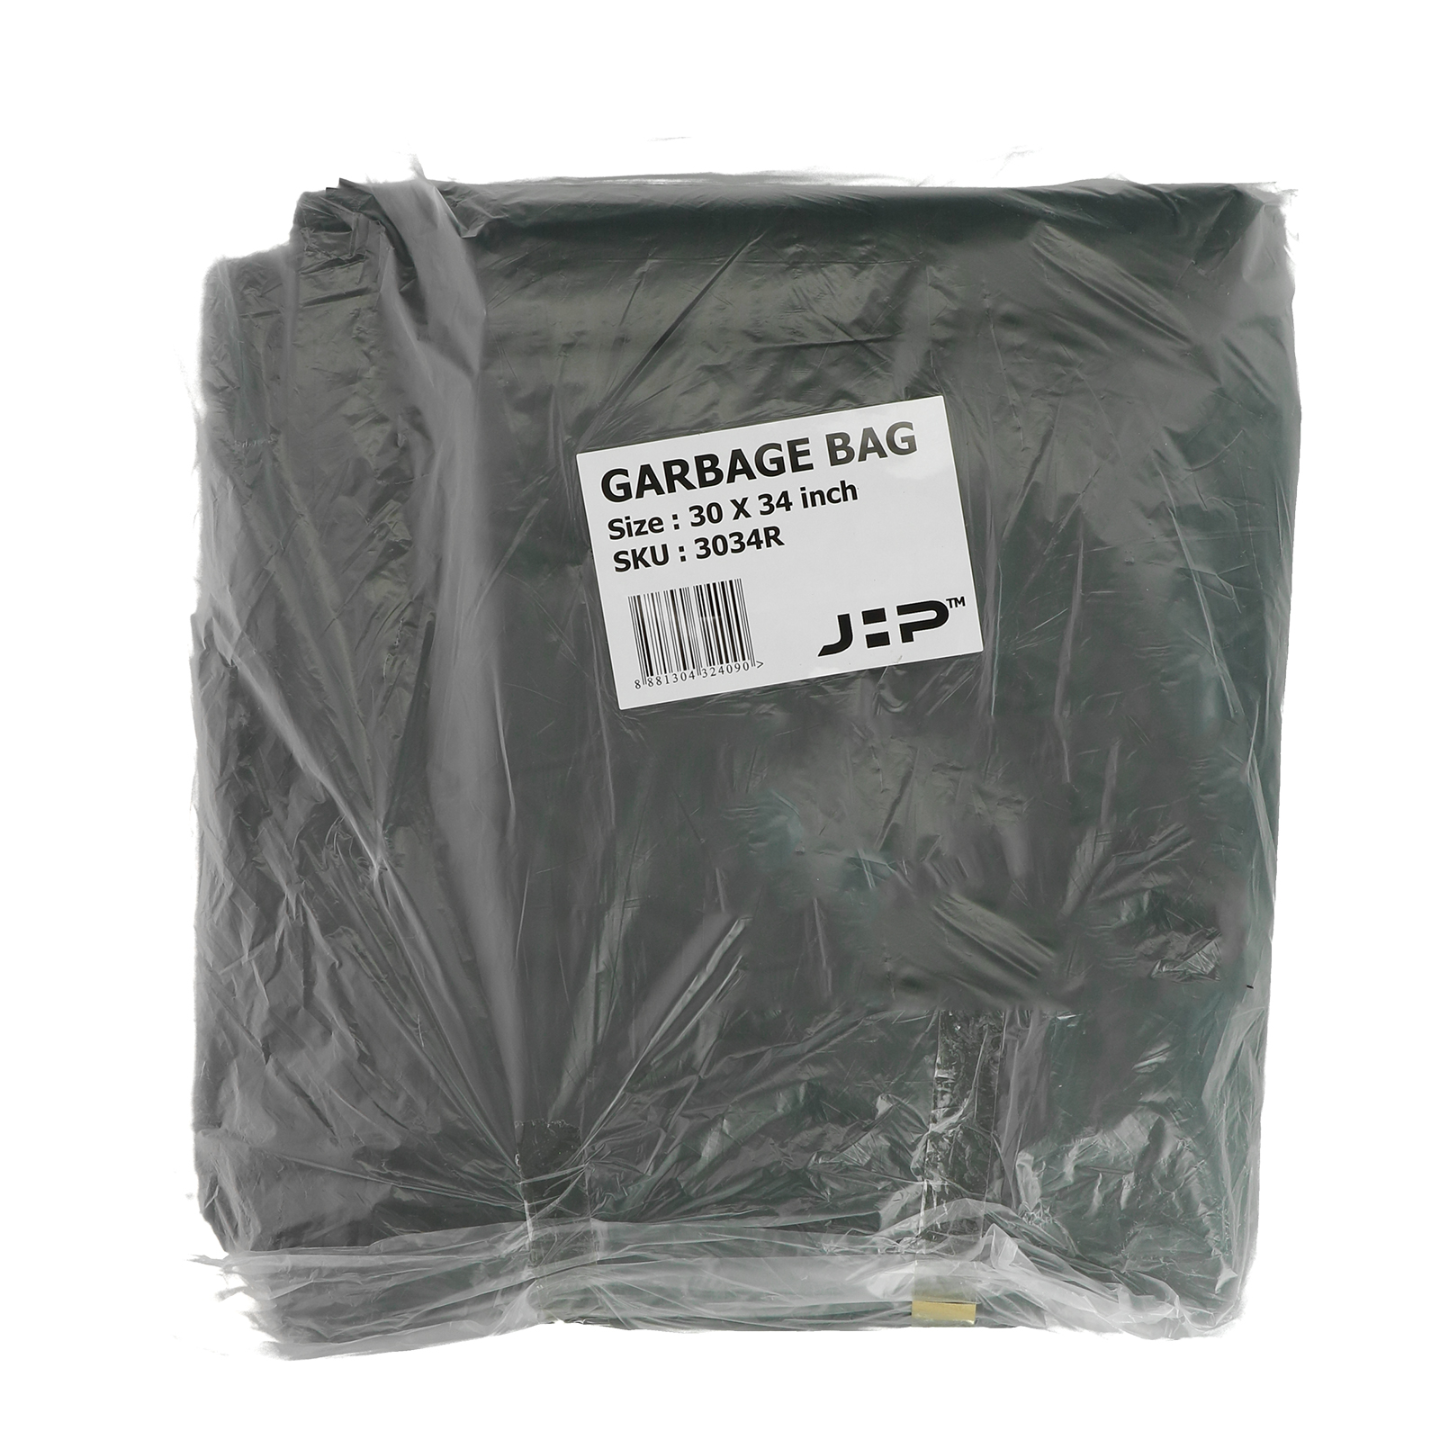 30 x 34 Garbage Bag R 垃圾袋 Black